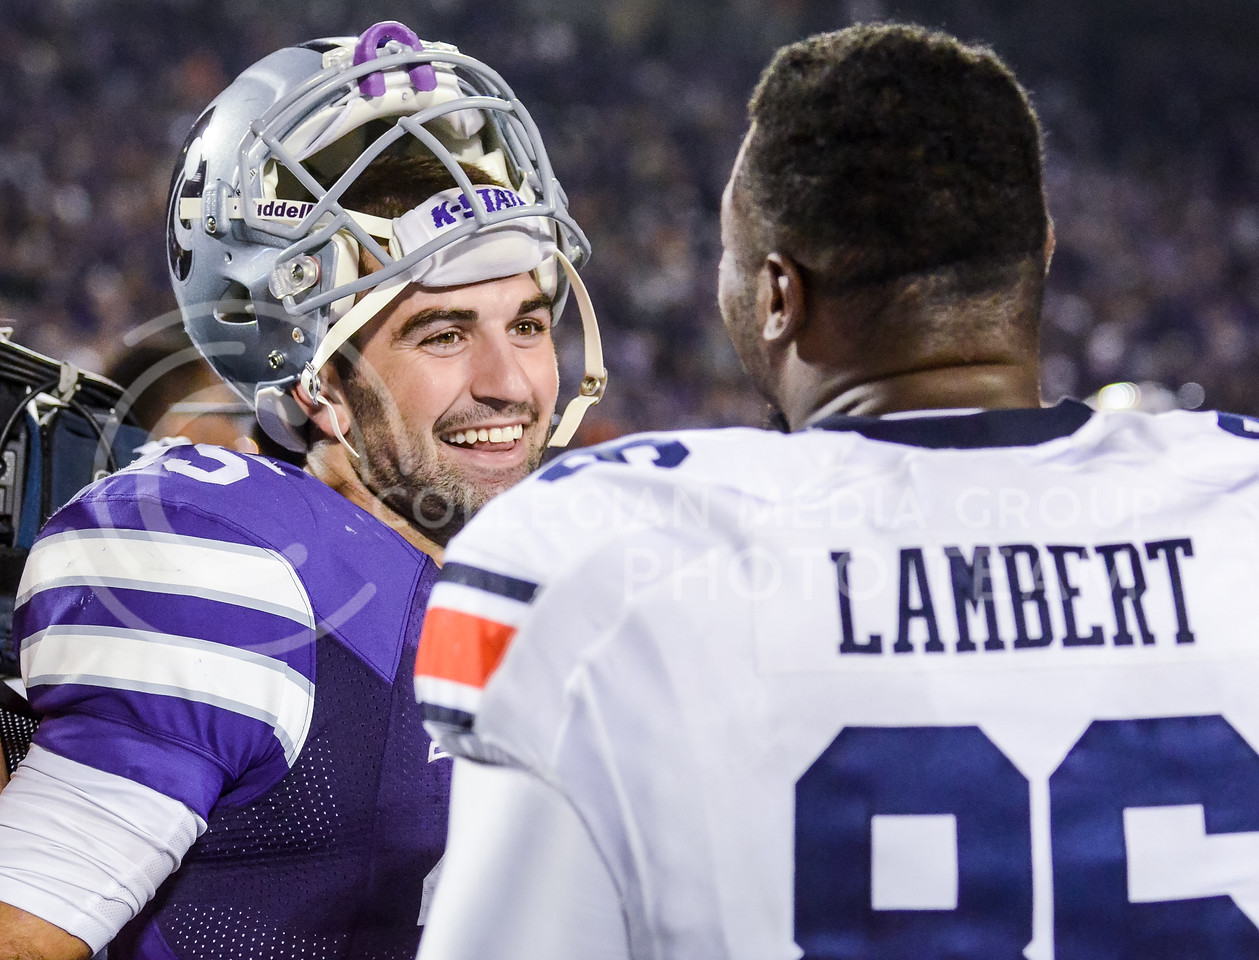 Parker Robb | The Collegian<br /> <br /> Senior quarterback Jake Waters chats with Auburn defensive end DaVonte Lambert following the Wildcats' 20-14 loss to Auburn Thursday evening at Bill Snyder Family Stadium.